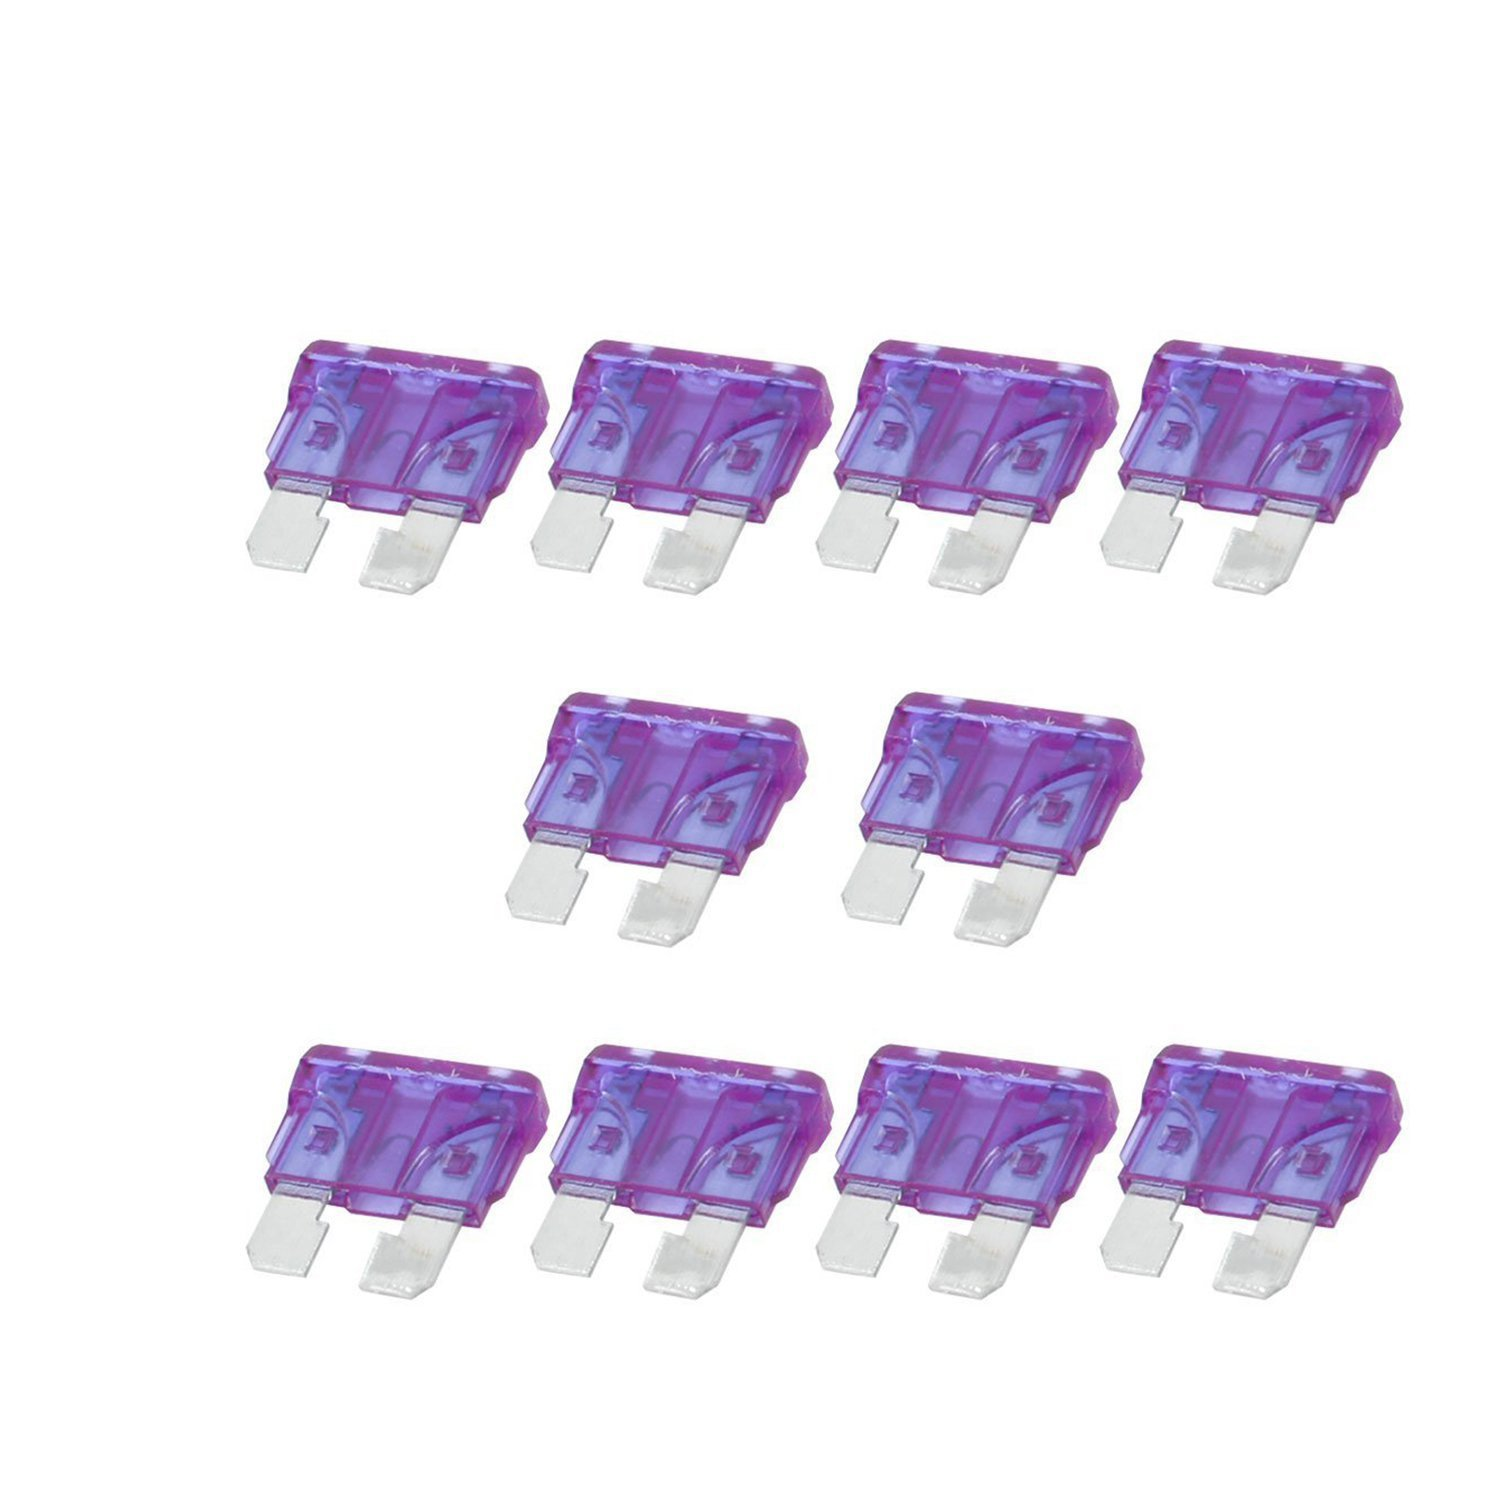 Cheap 5 Amp Car Fuse Find Deals On Line At Alibabacom Wiring Kits Subwoofer Kit Fusechina Get Quotations Yxq 30pcs 3a 3amp Mini Blade Automotive Replacement Fuses Holder Accessories